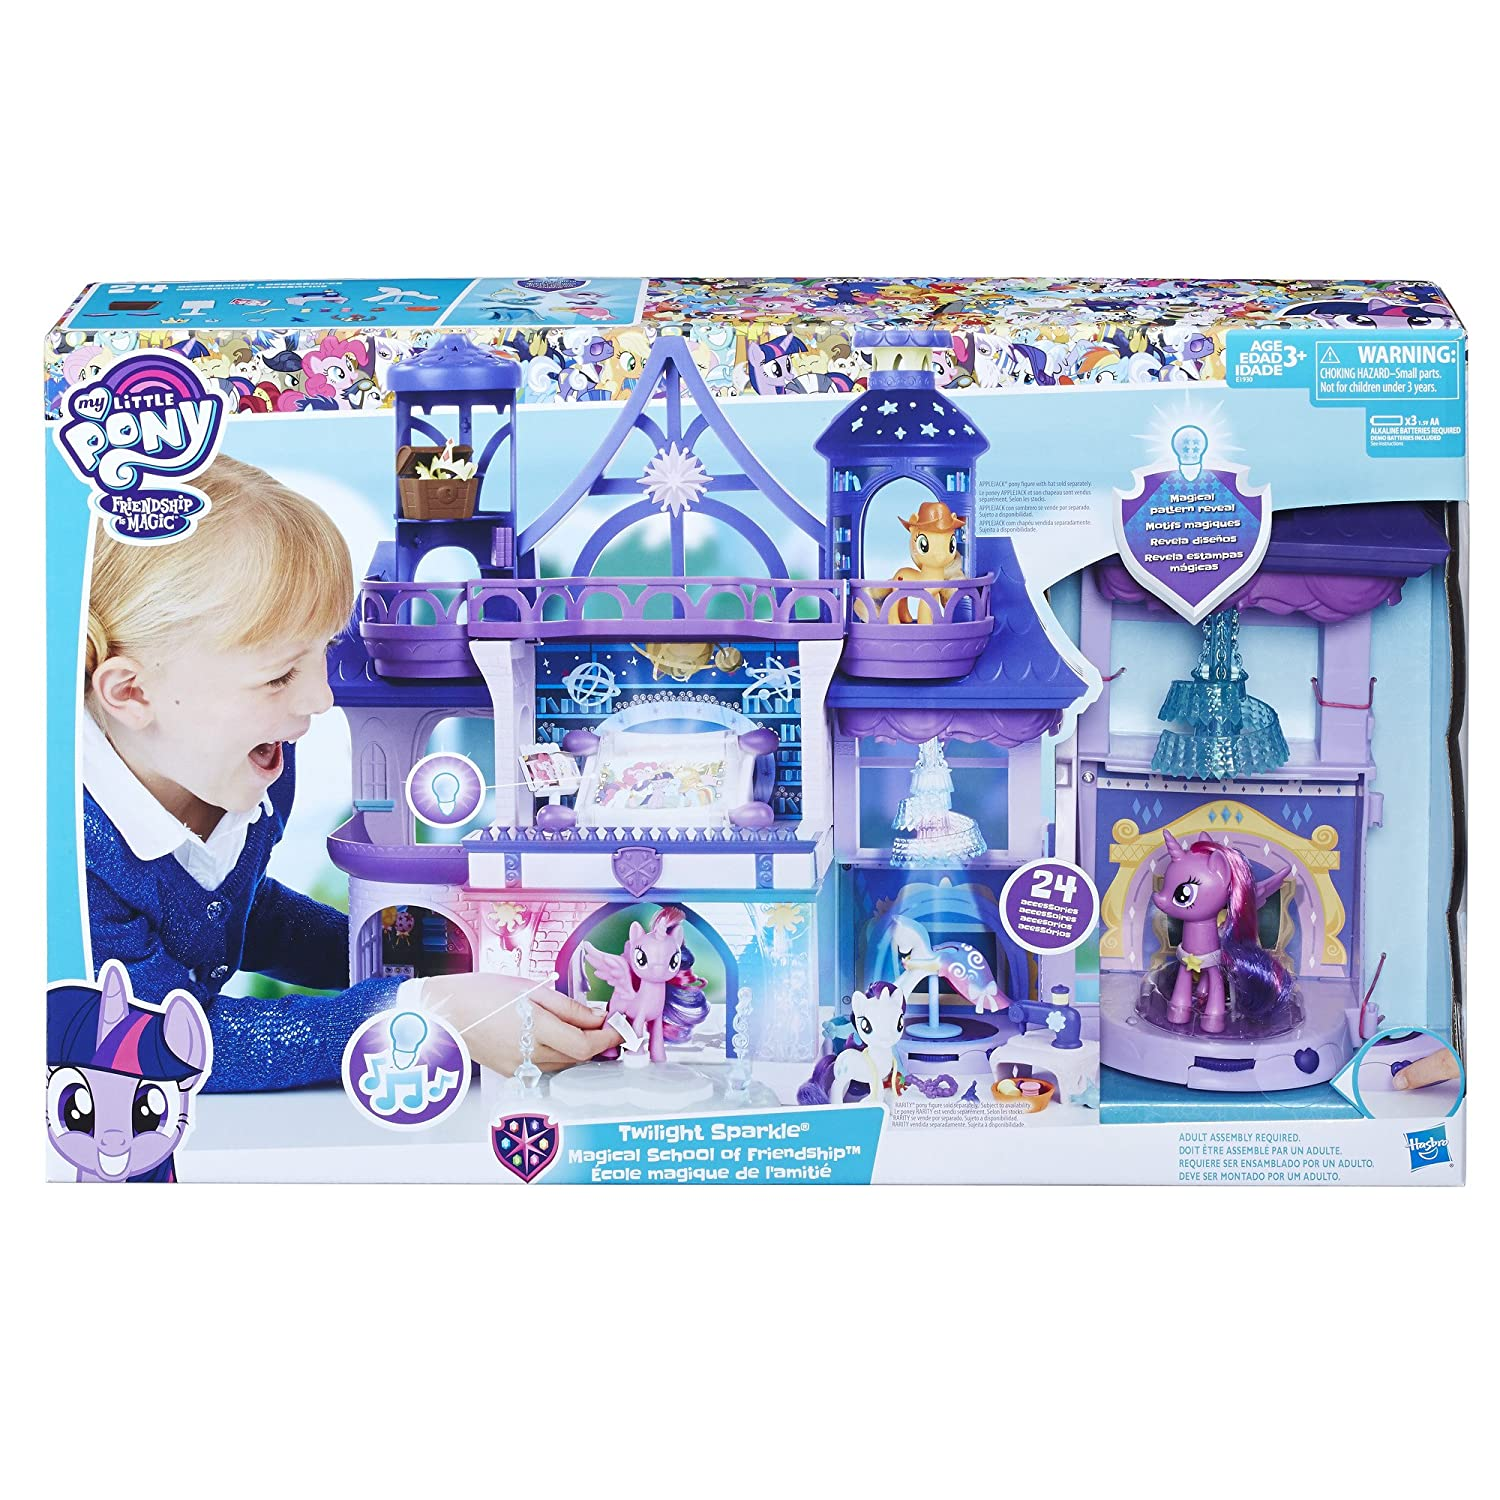 Top 11 Best My Little Pony Toys Reviews in 2020 7